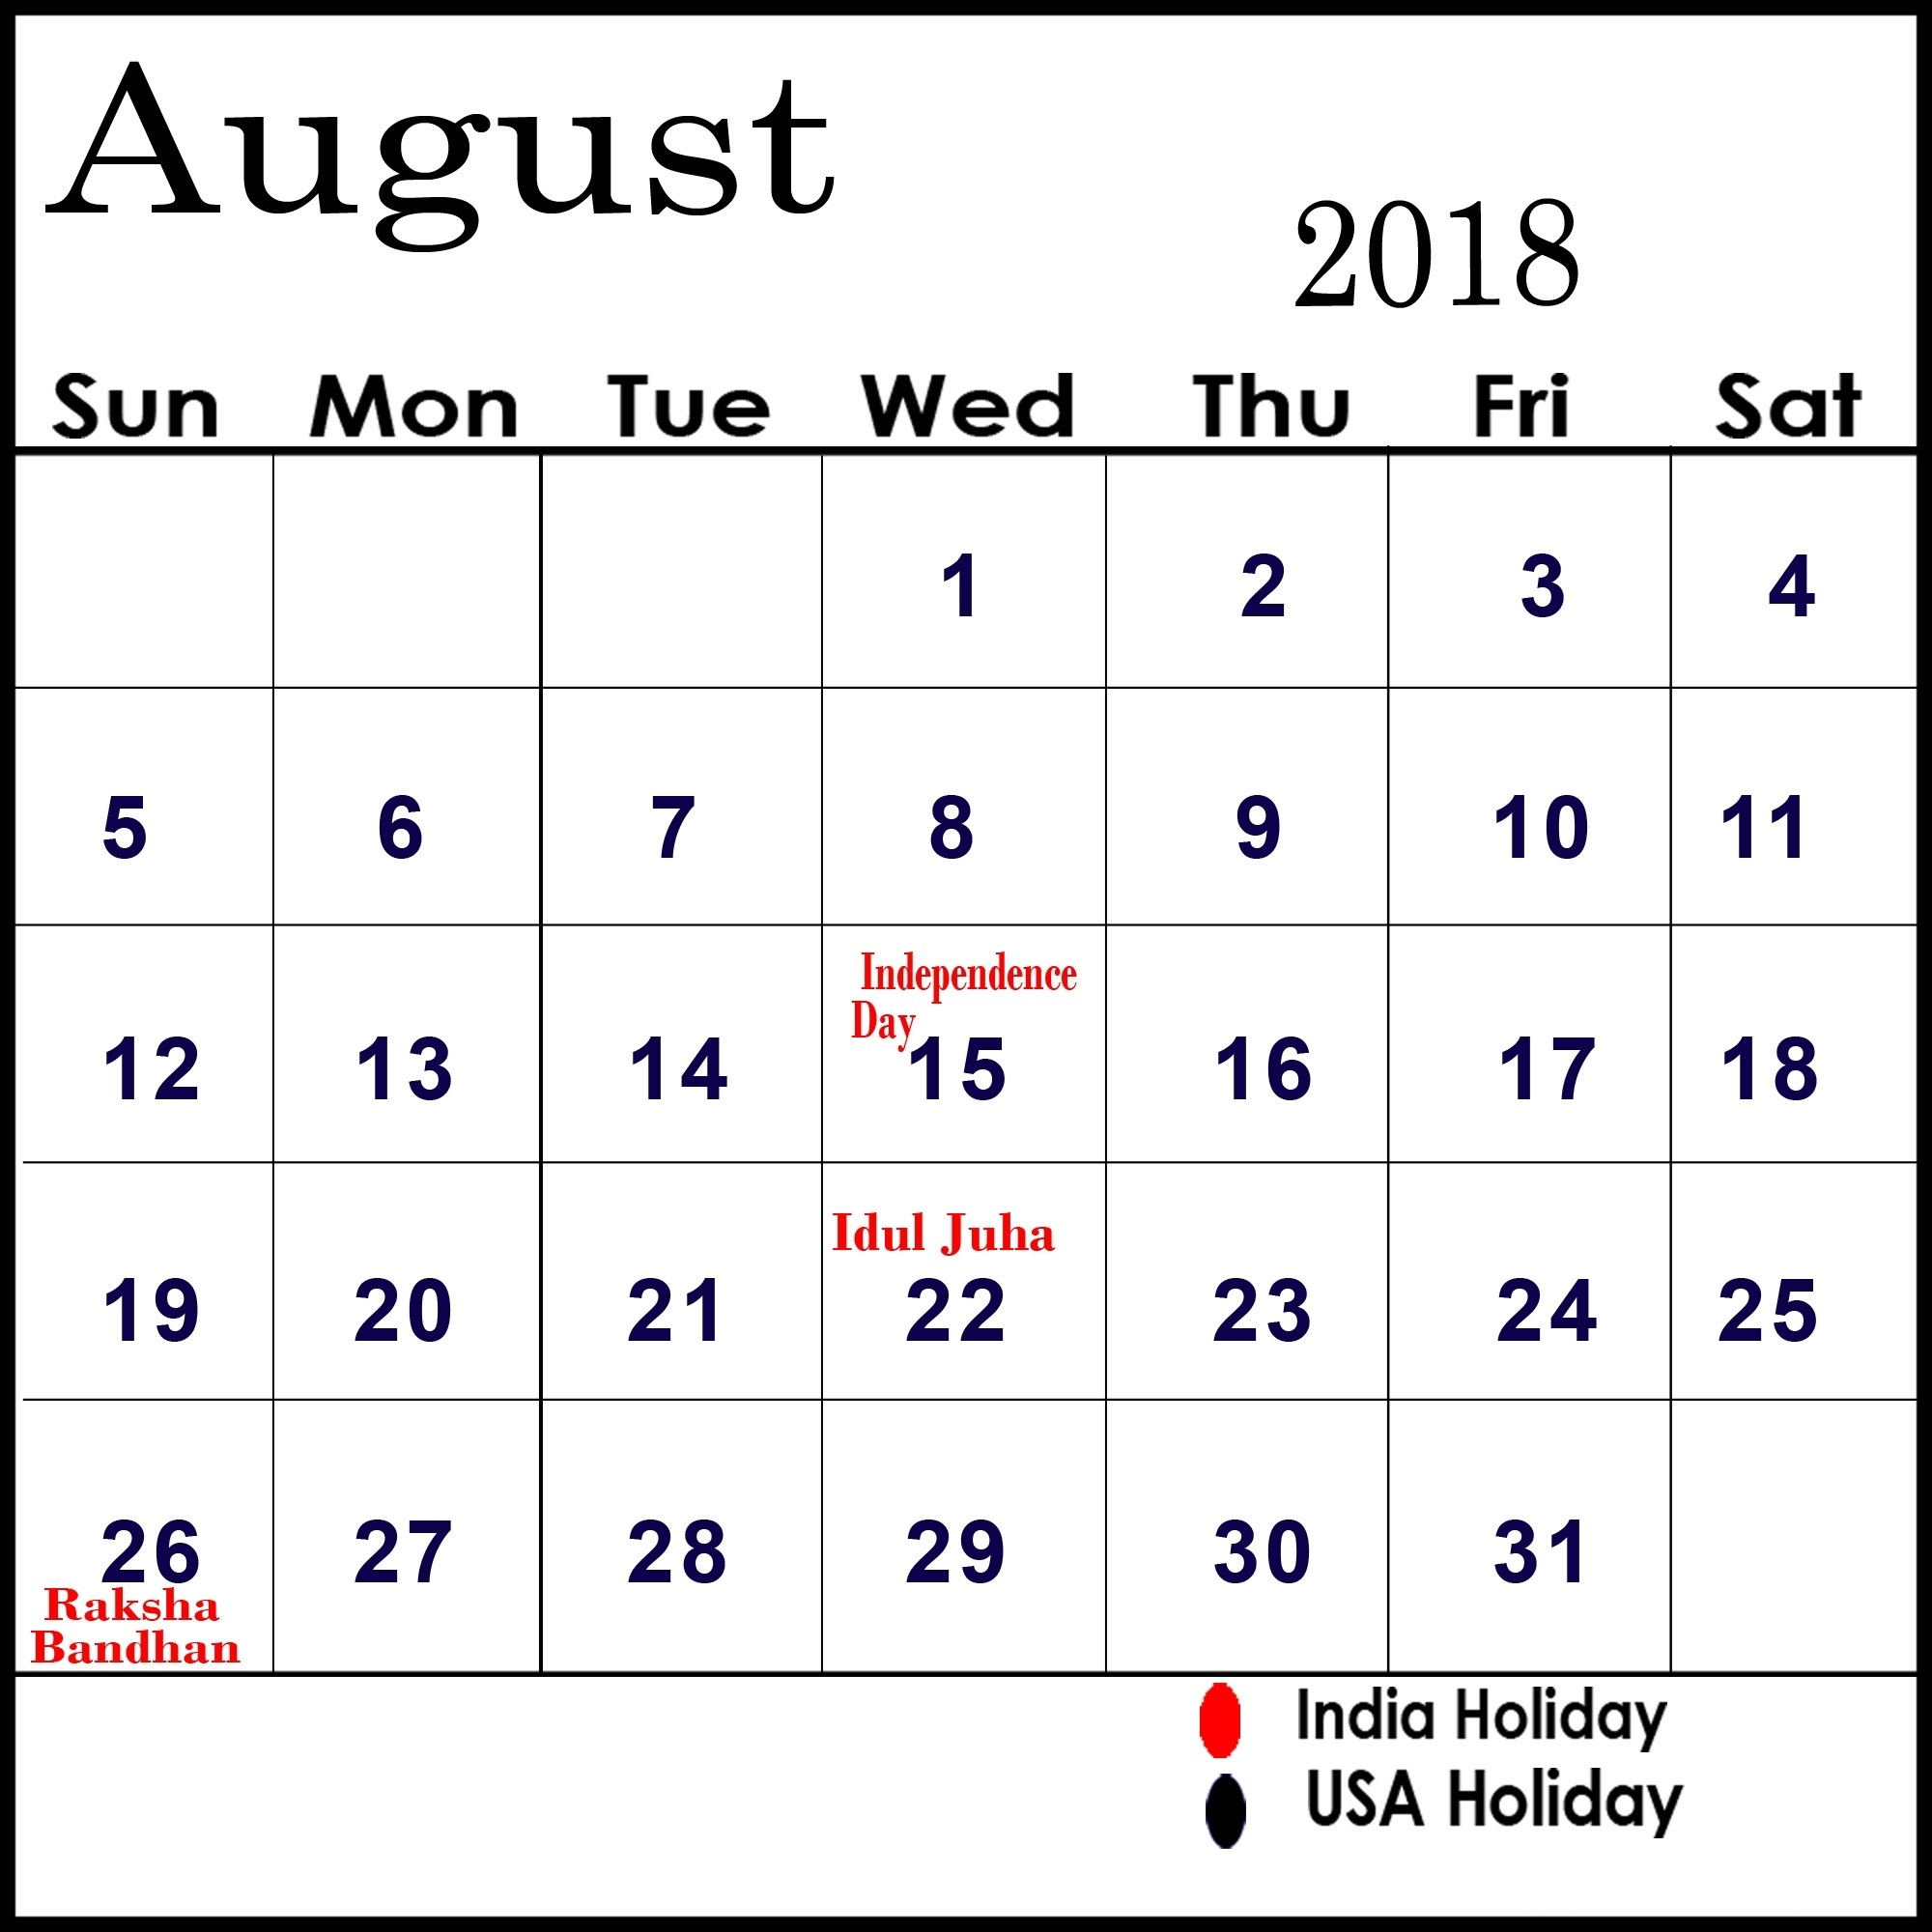 August 2018 Calendar With Holidays | Calendar Monthly Printable regarding August 2018 Calendar With Holidays